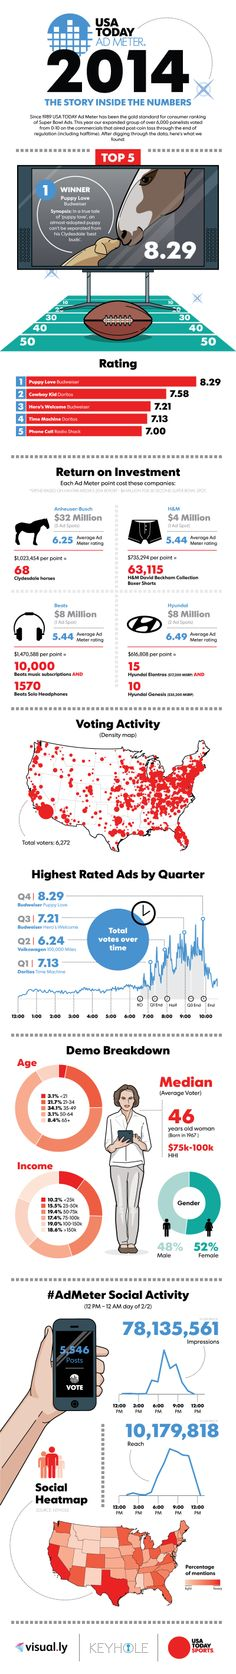 USA Today Ad Meter 2014 - The Story Inside The Numbers  #Infographic #Sports #Advertising